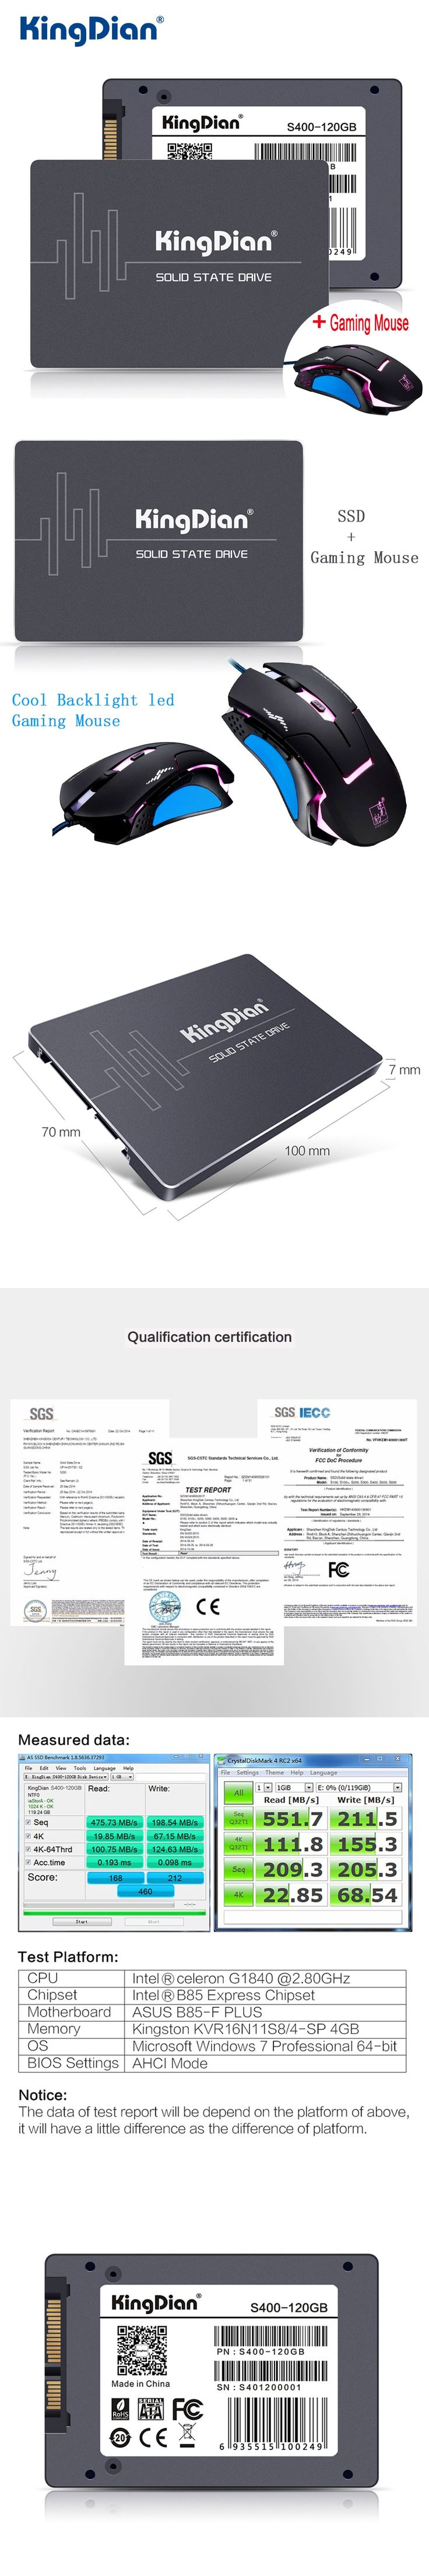 KingDian SSD 120GB S400 3 Years Warranty SATA3 2.5 inch Hard Drive Disk 120GB HD HDD Factory Directly For Computer+Gaming Mouse